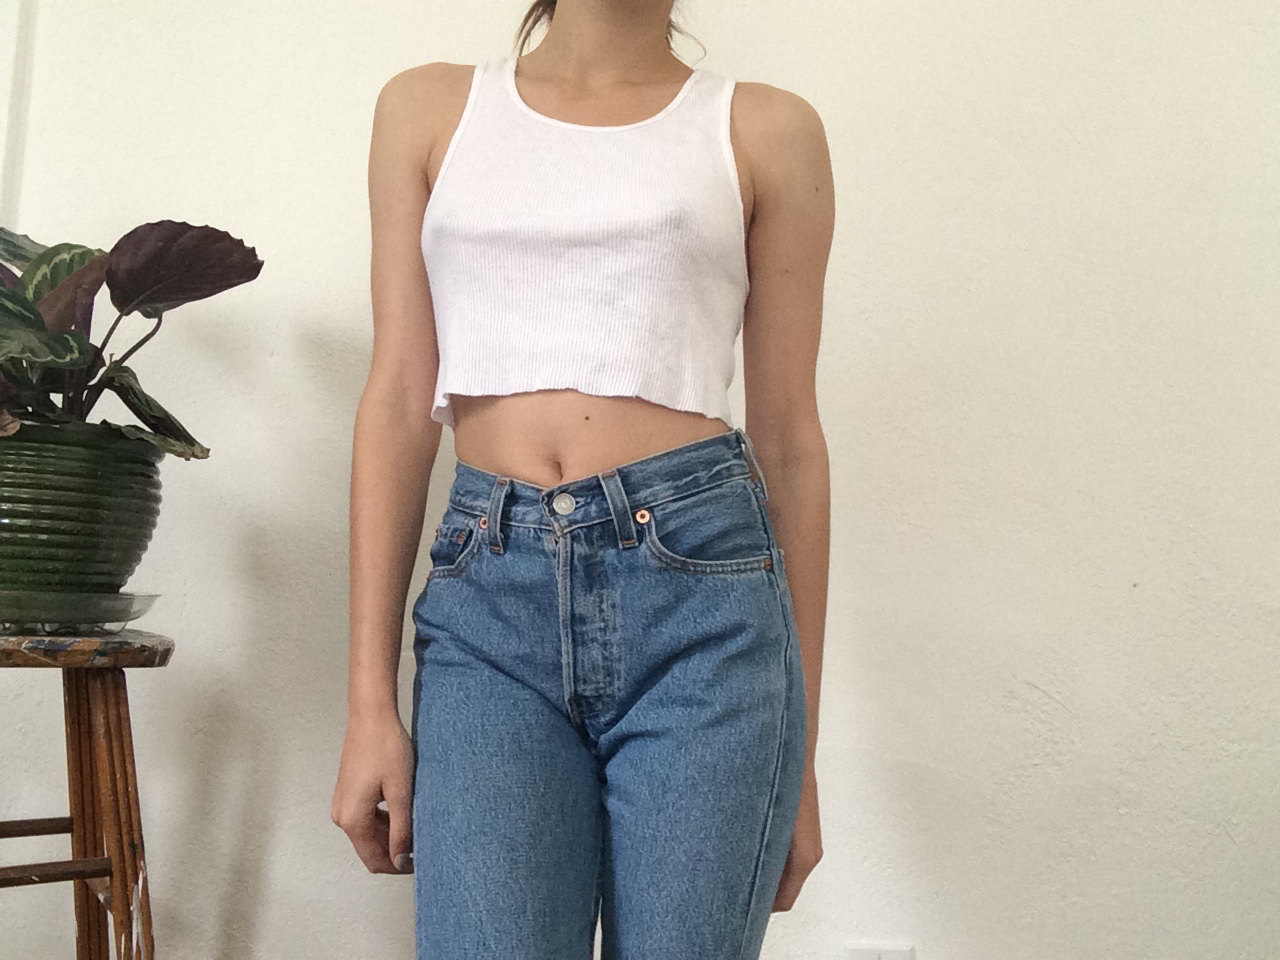 ea7ef791dcc74 White Cropped Tank   90s   ribbed   small   medium   wife beater